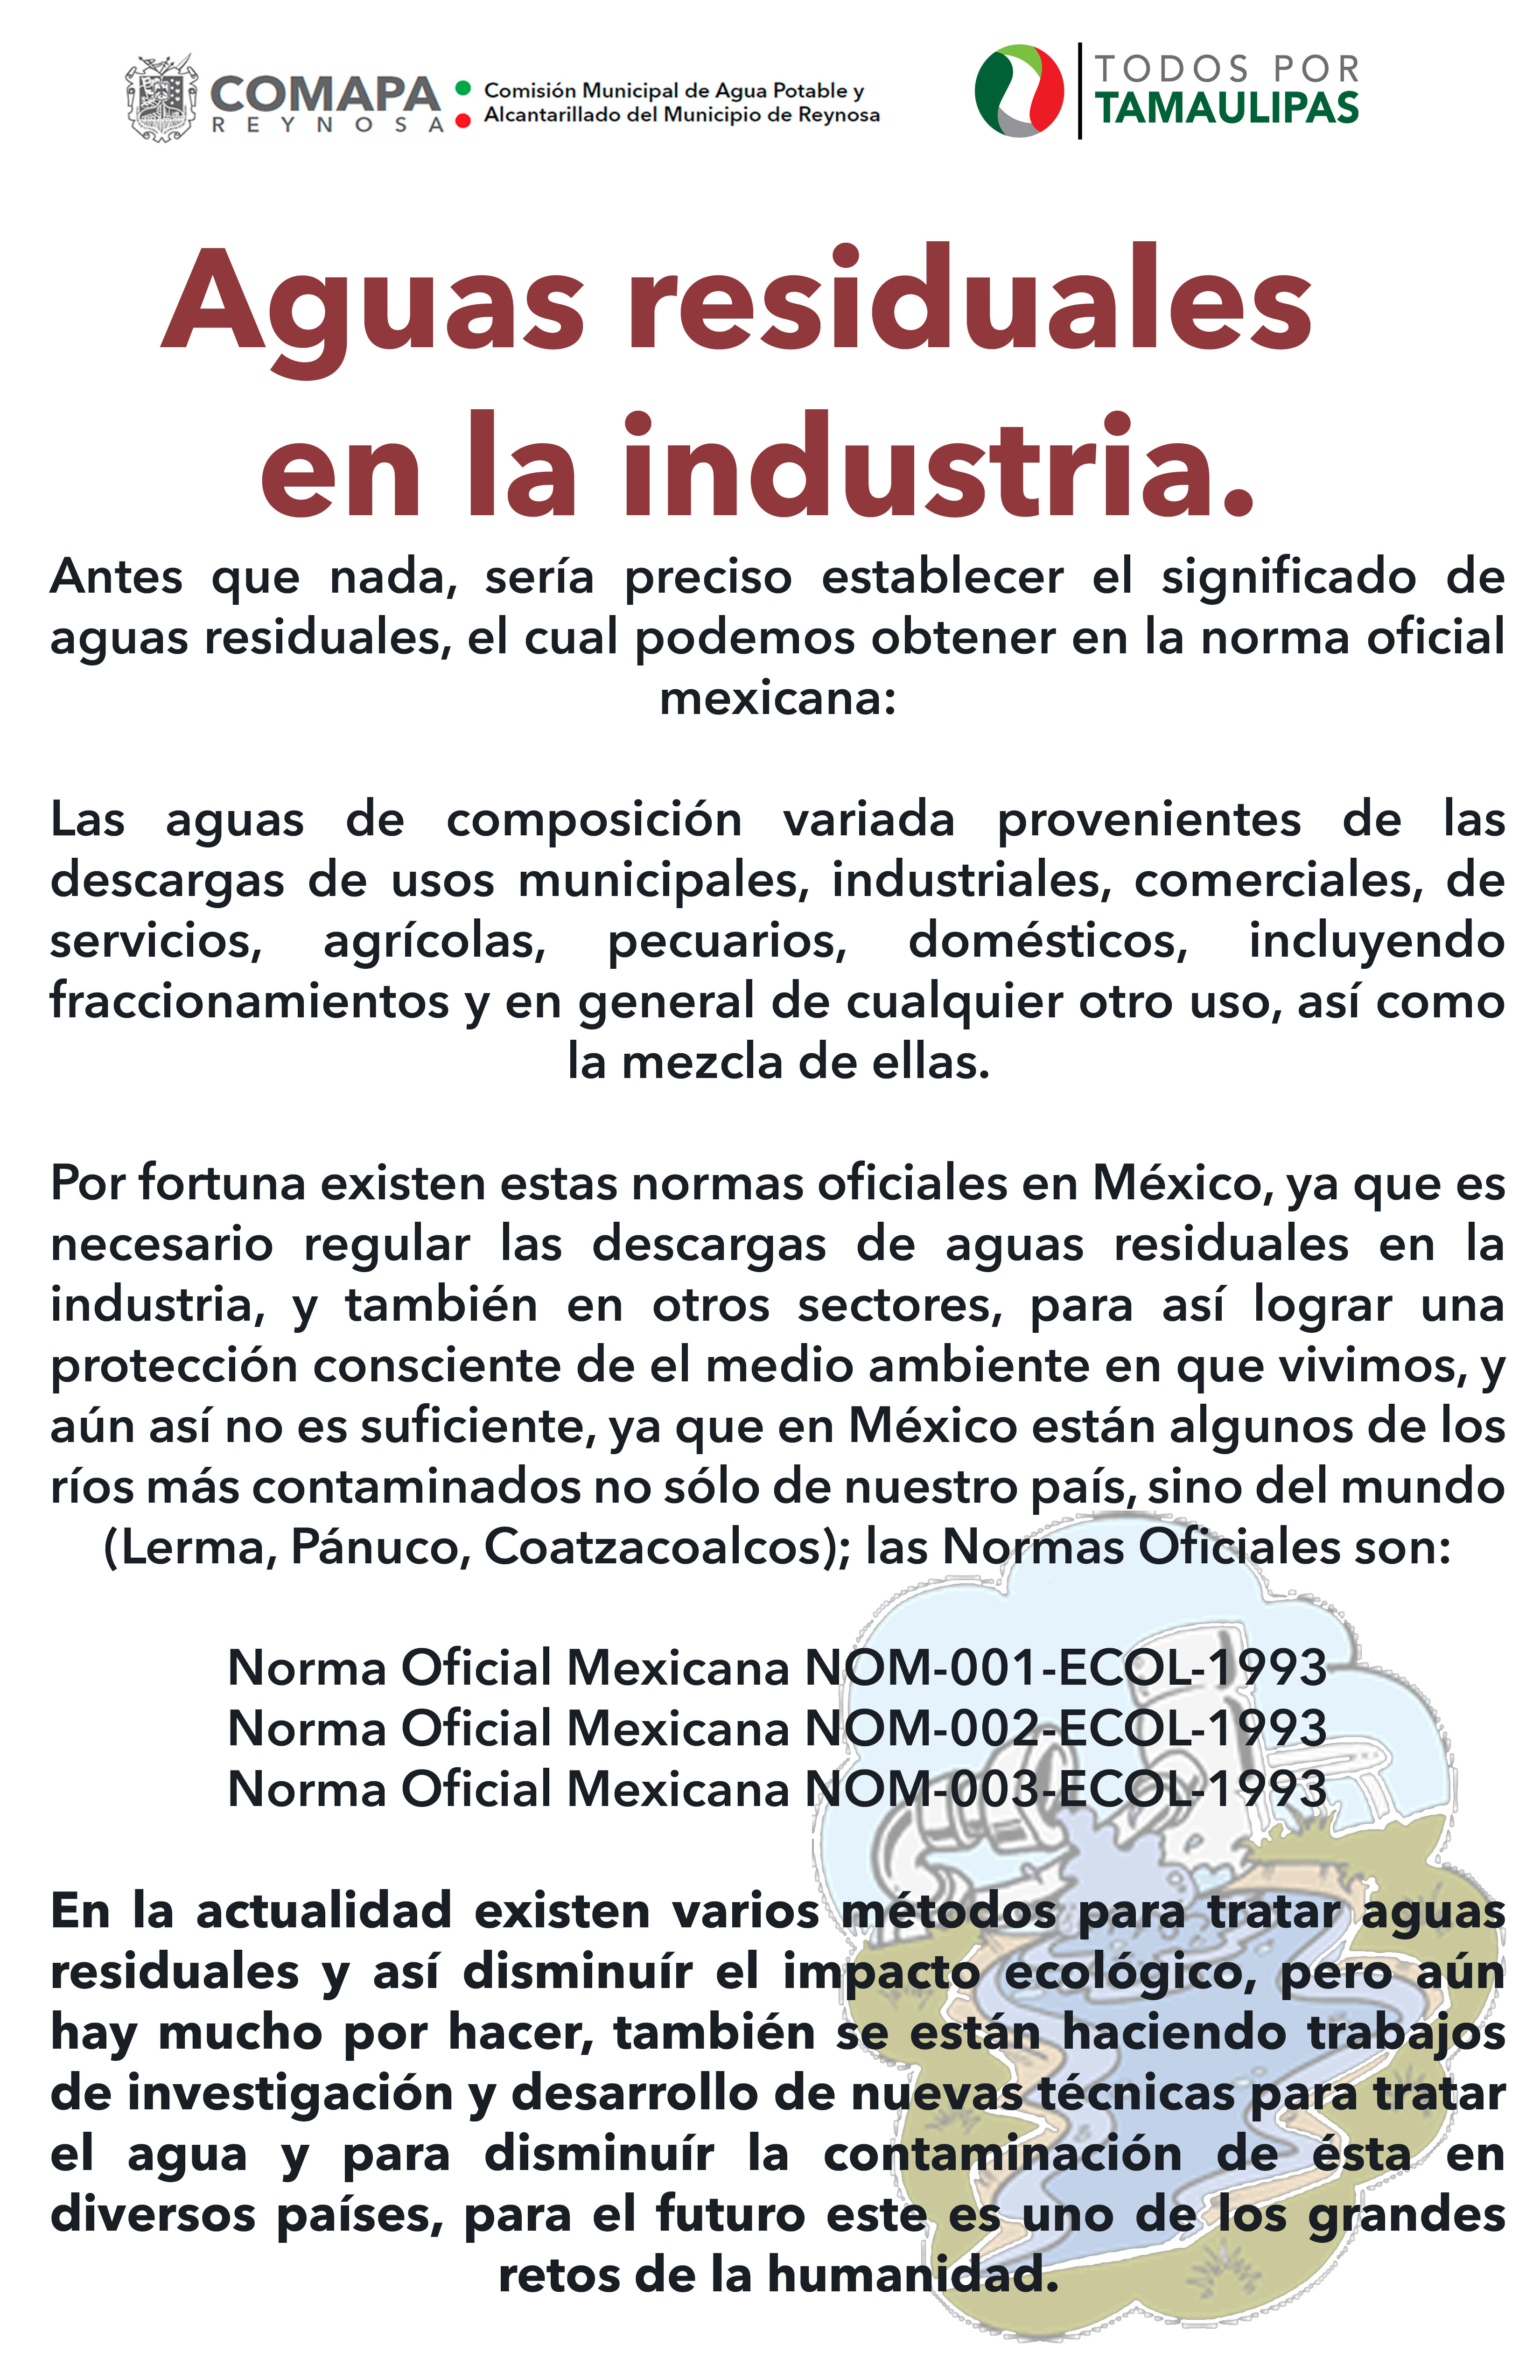 Aguas residuales en la industria